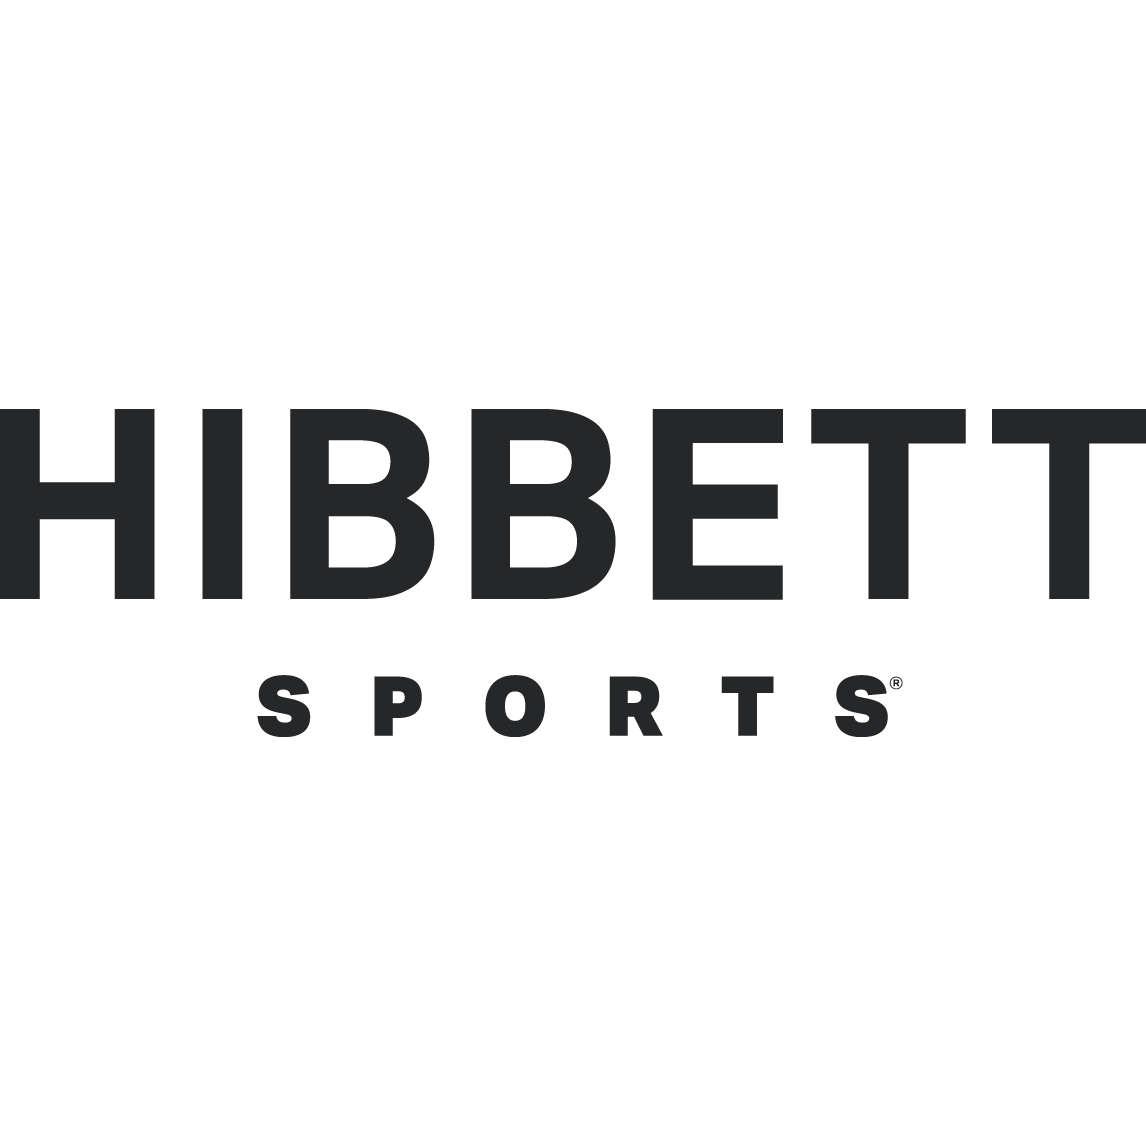 Hibbett Sports - St Clairsville, OH - Shoes